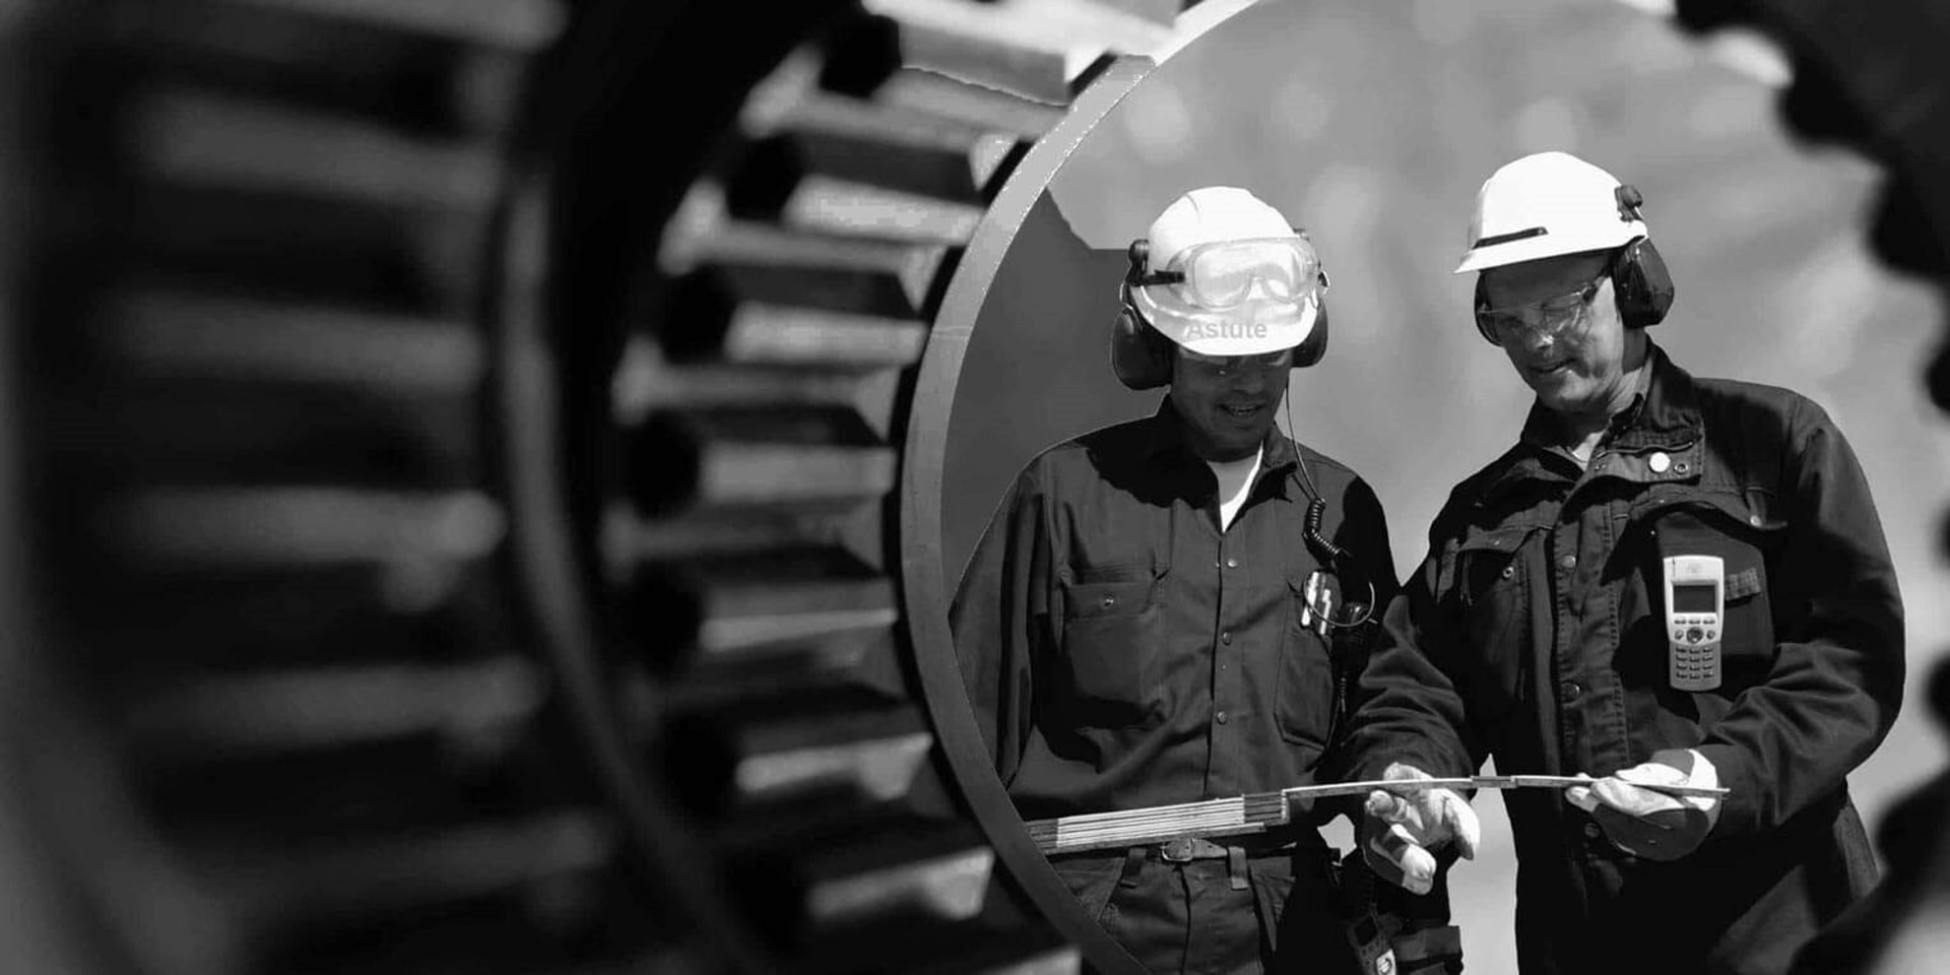 Astute Technical jobs - A black and white photo of two energy workers with hard hats